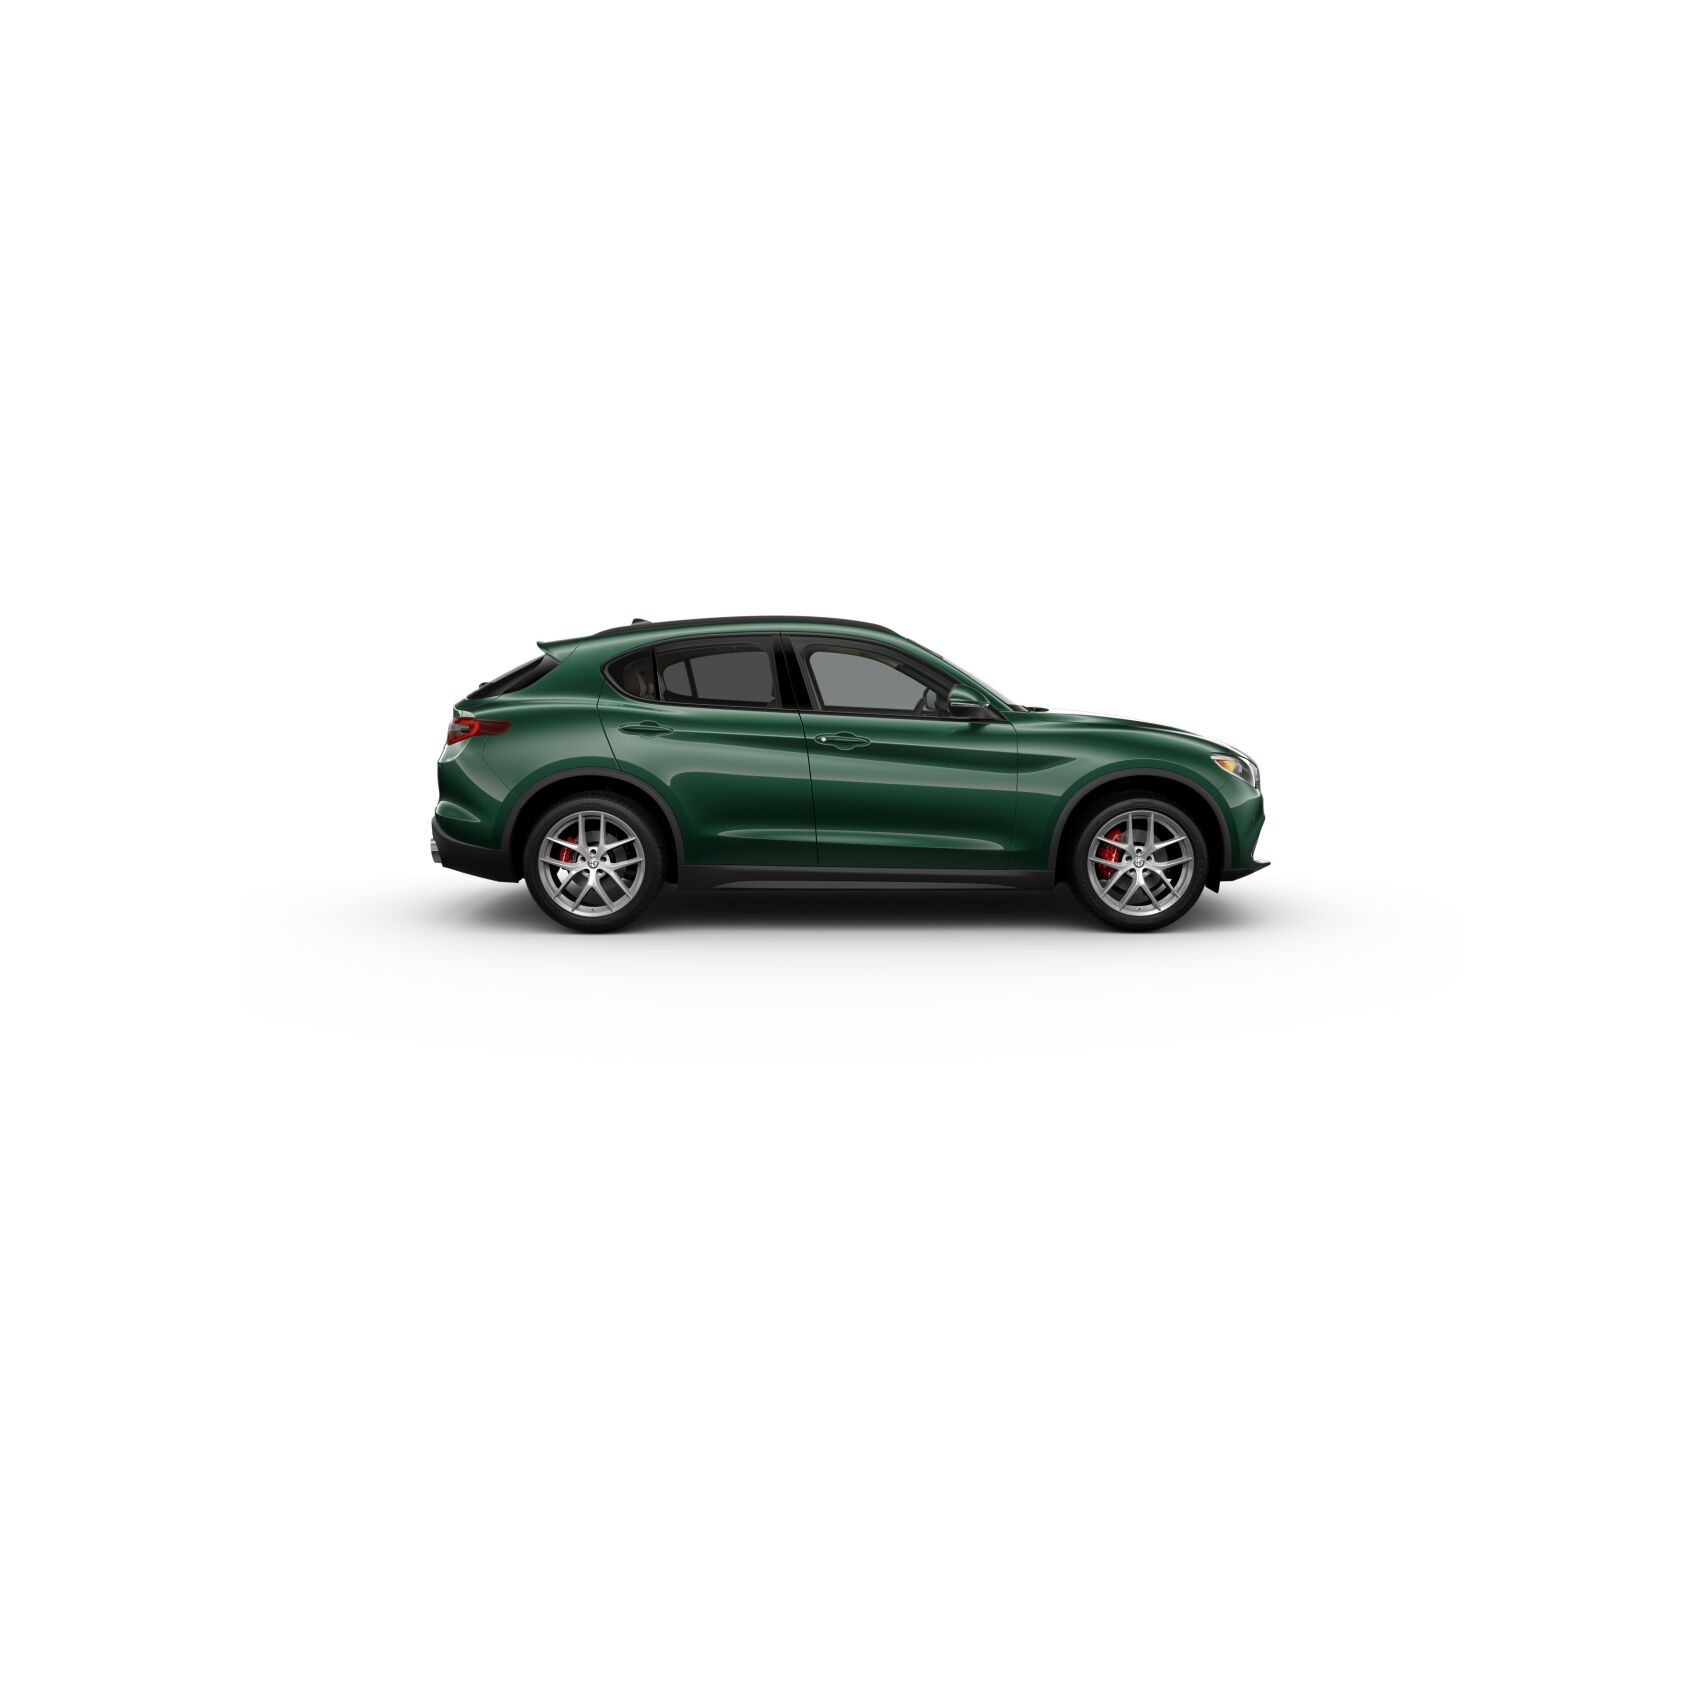 2019 Alfa Romeo Stelvio in Verde Visconti